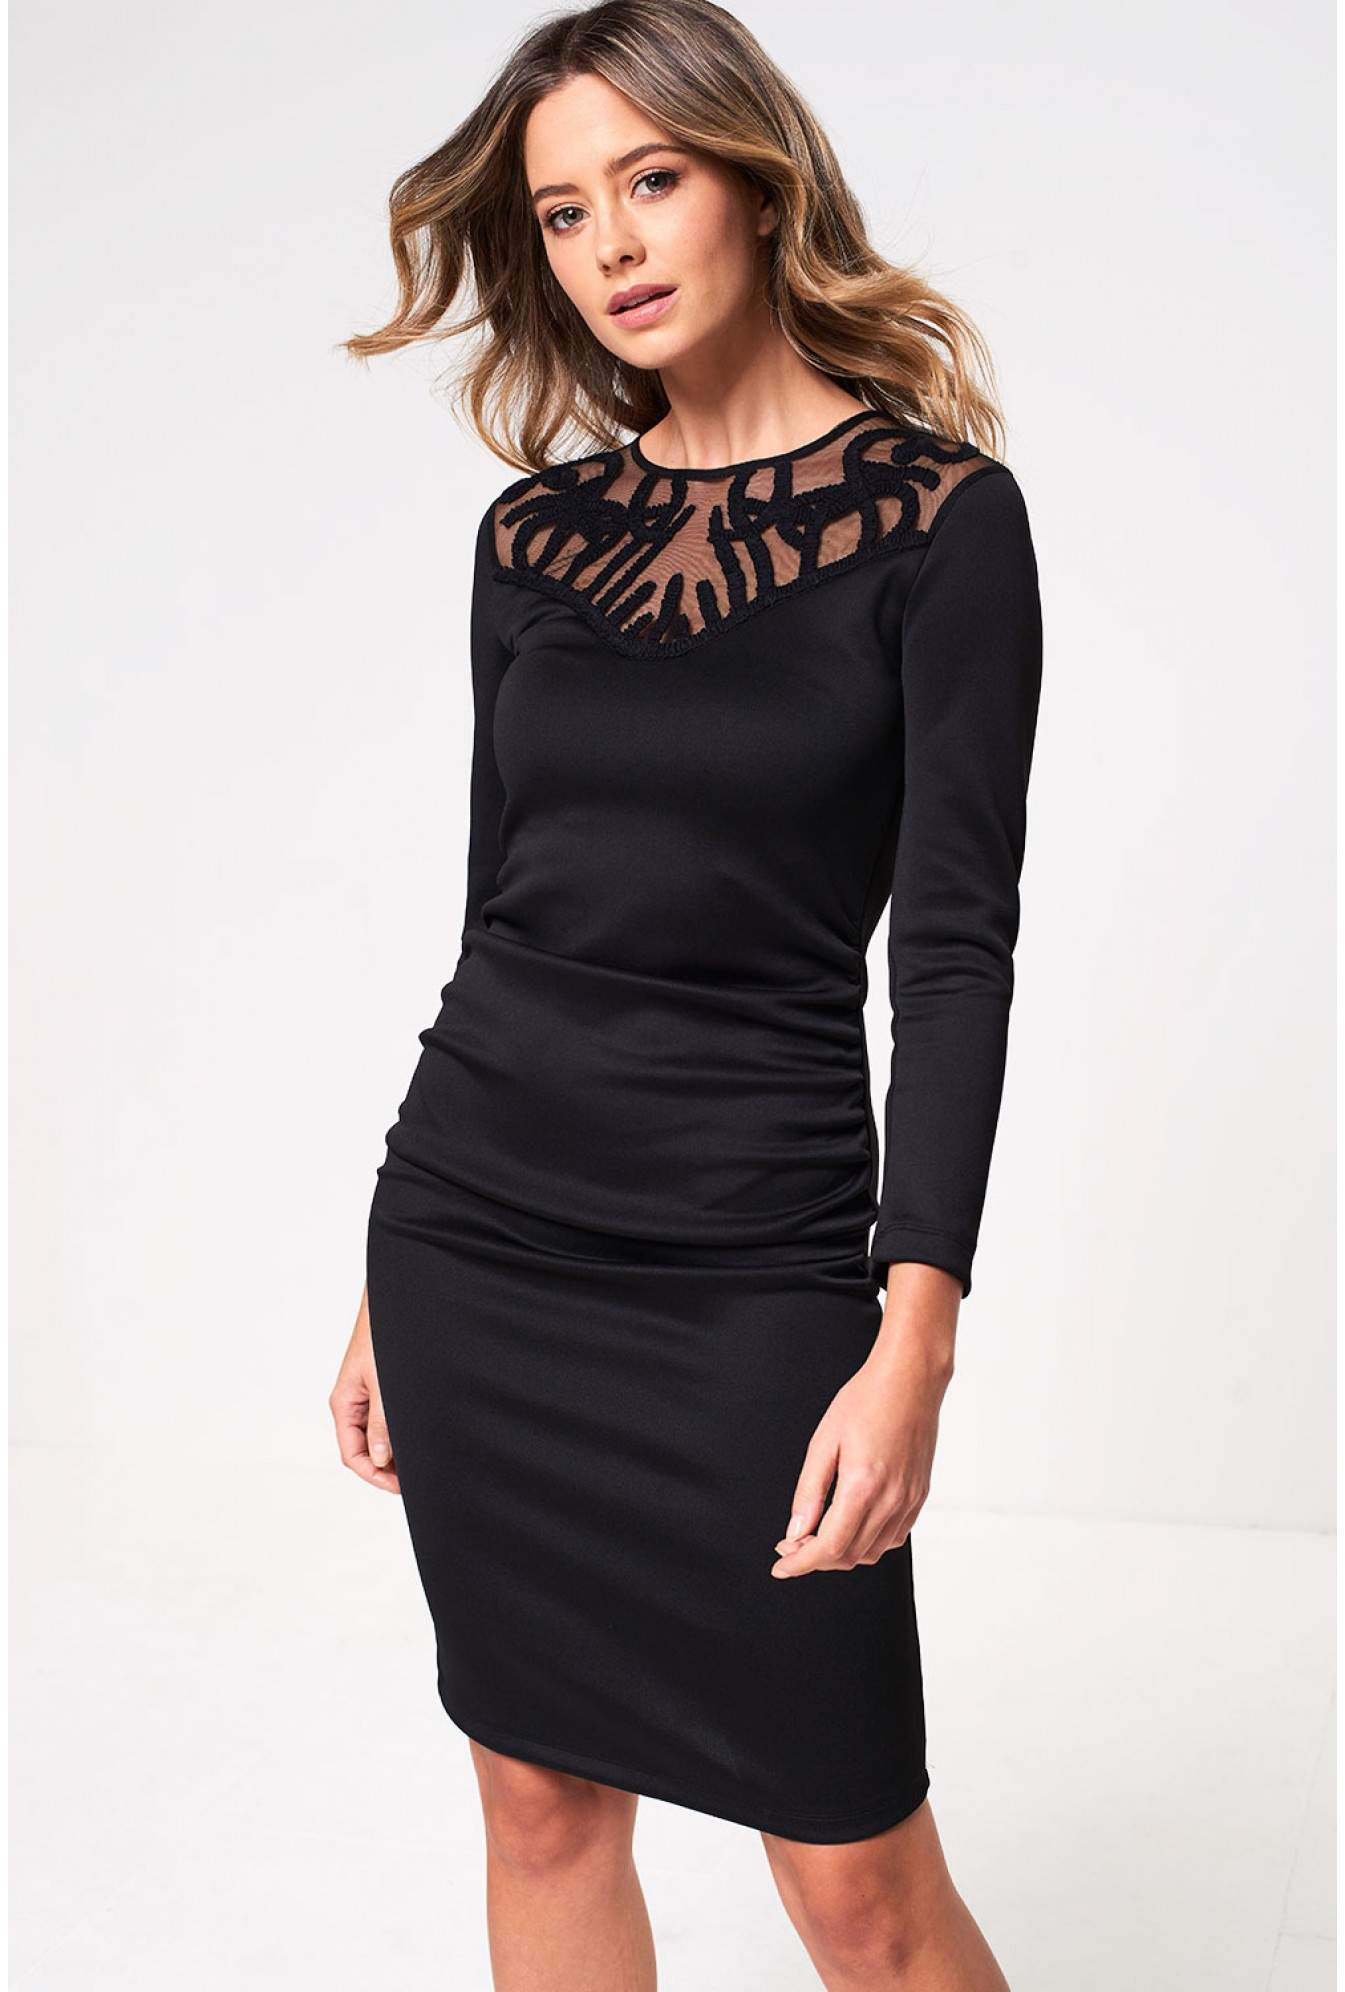 626025cc146 More Views. Miva Long Sleeve Occasion Dress in Black